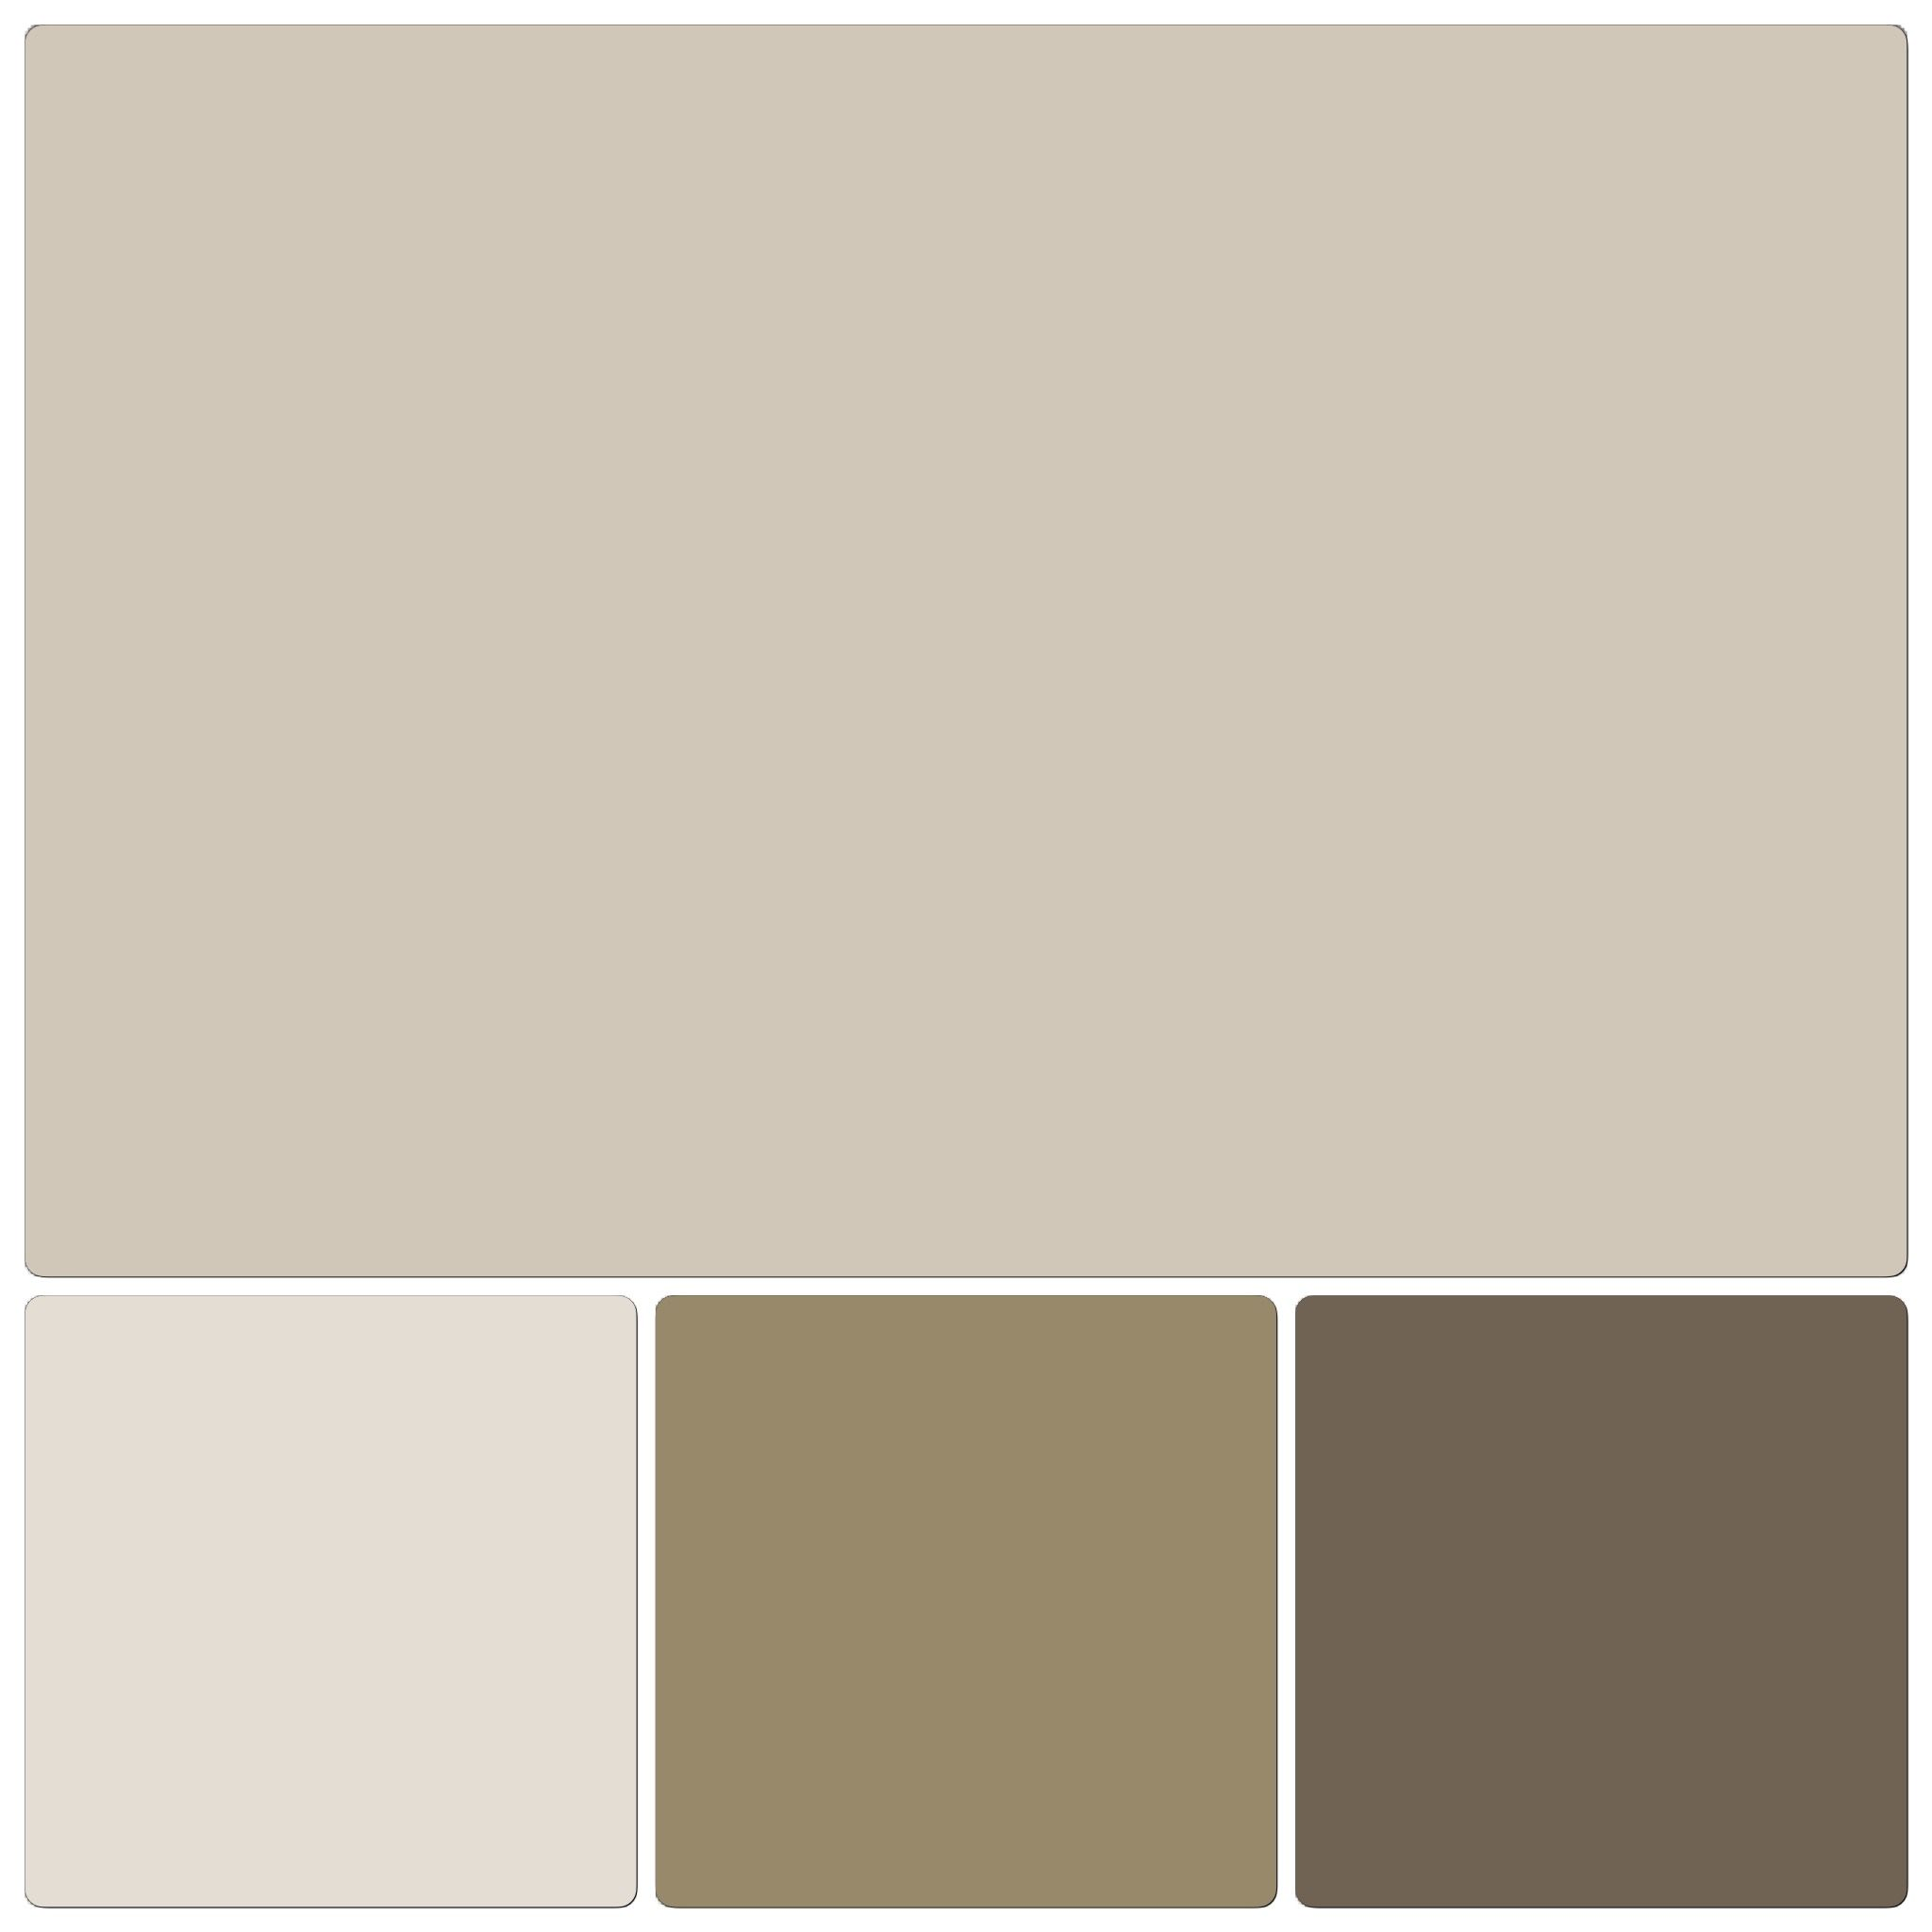 Basket beige sherwin williams - Body Sw 7036 Accessible Beige Trim Sw 7035 Aesthetic White Accent 1 Sw